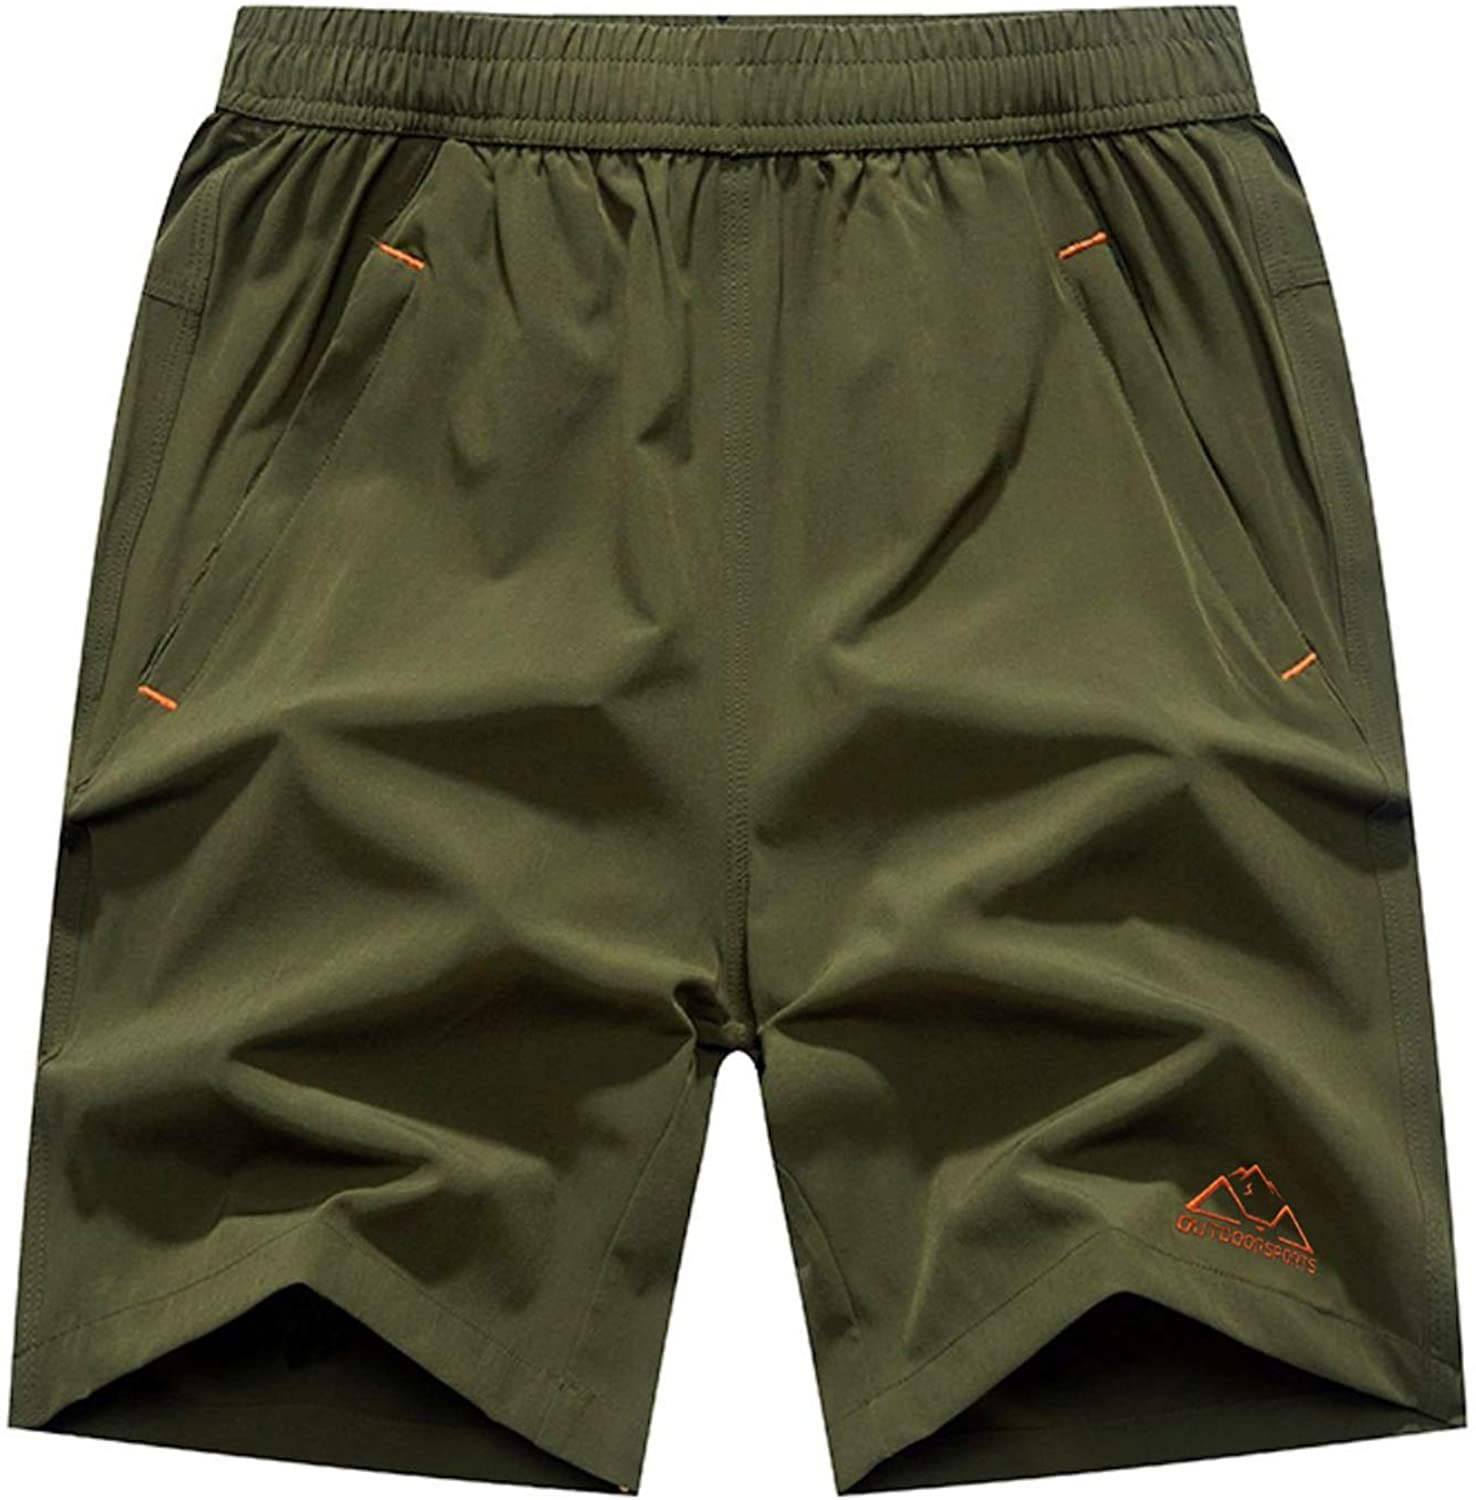 Rdruko Men's Quick Dry Fixed price for sale Max 56% OFF Hiking Running Shorts Workout Lightweight